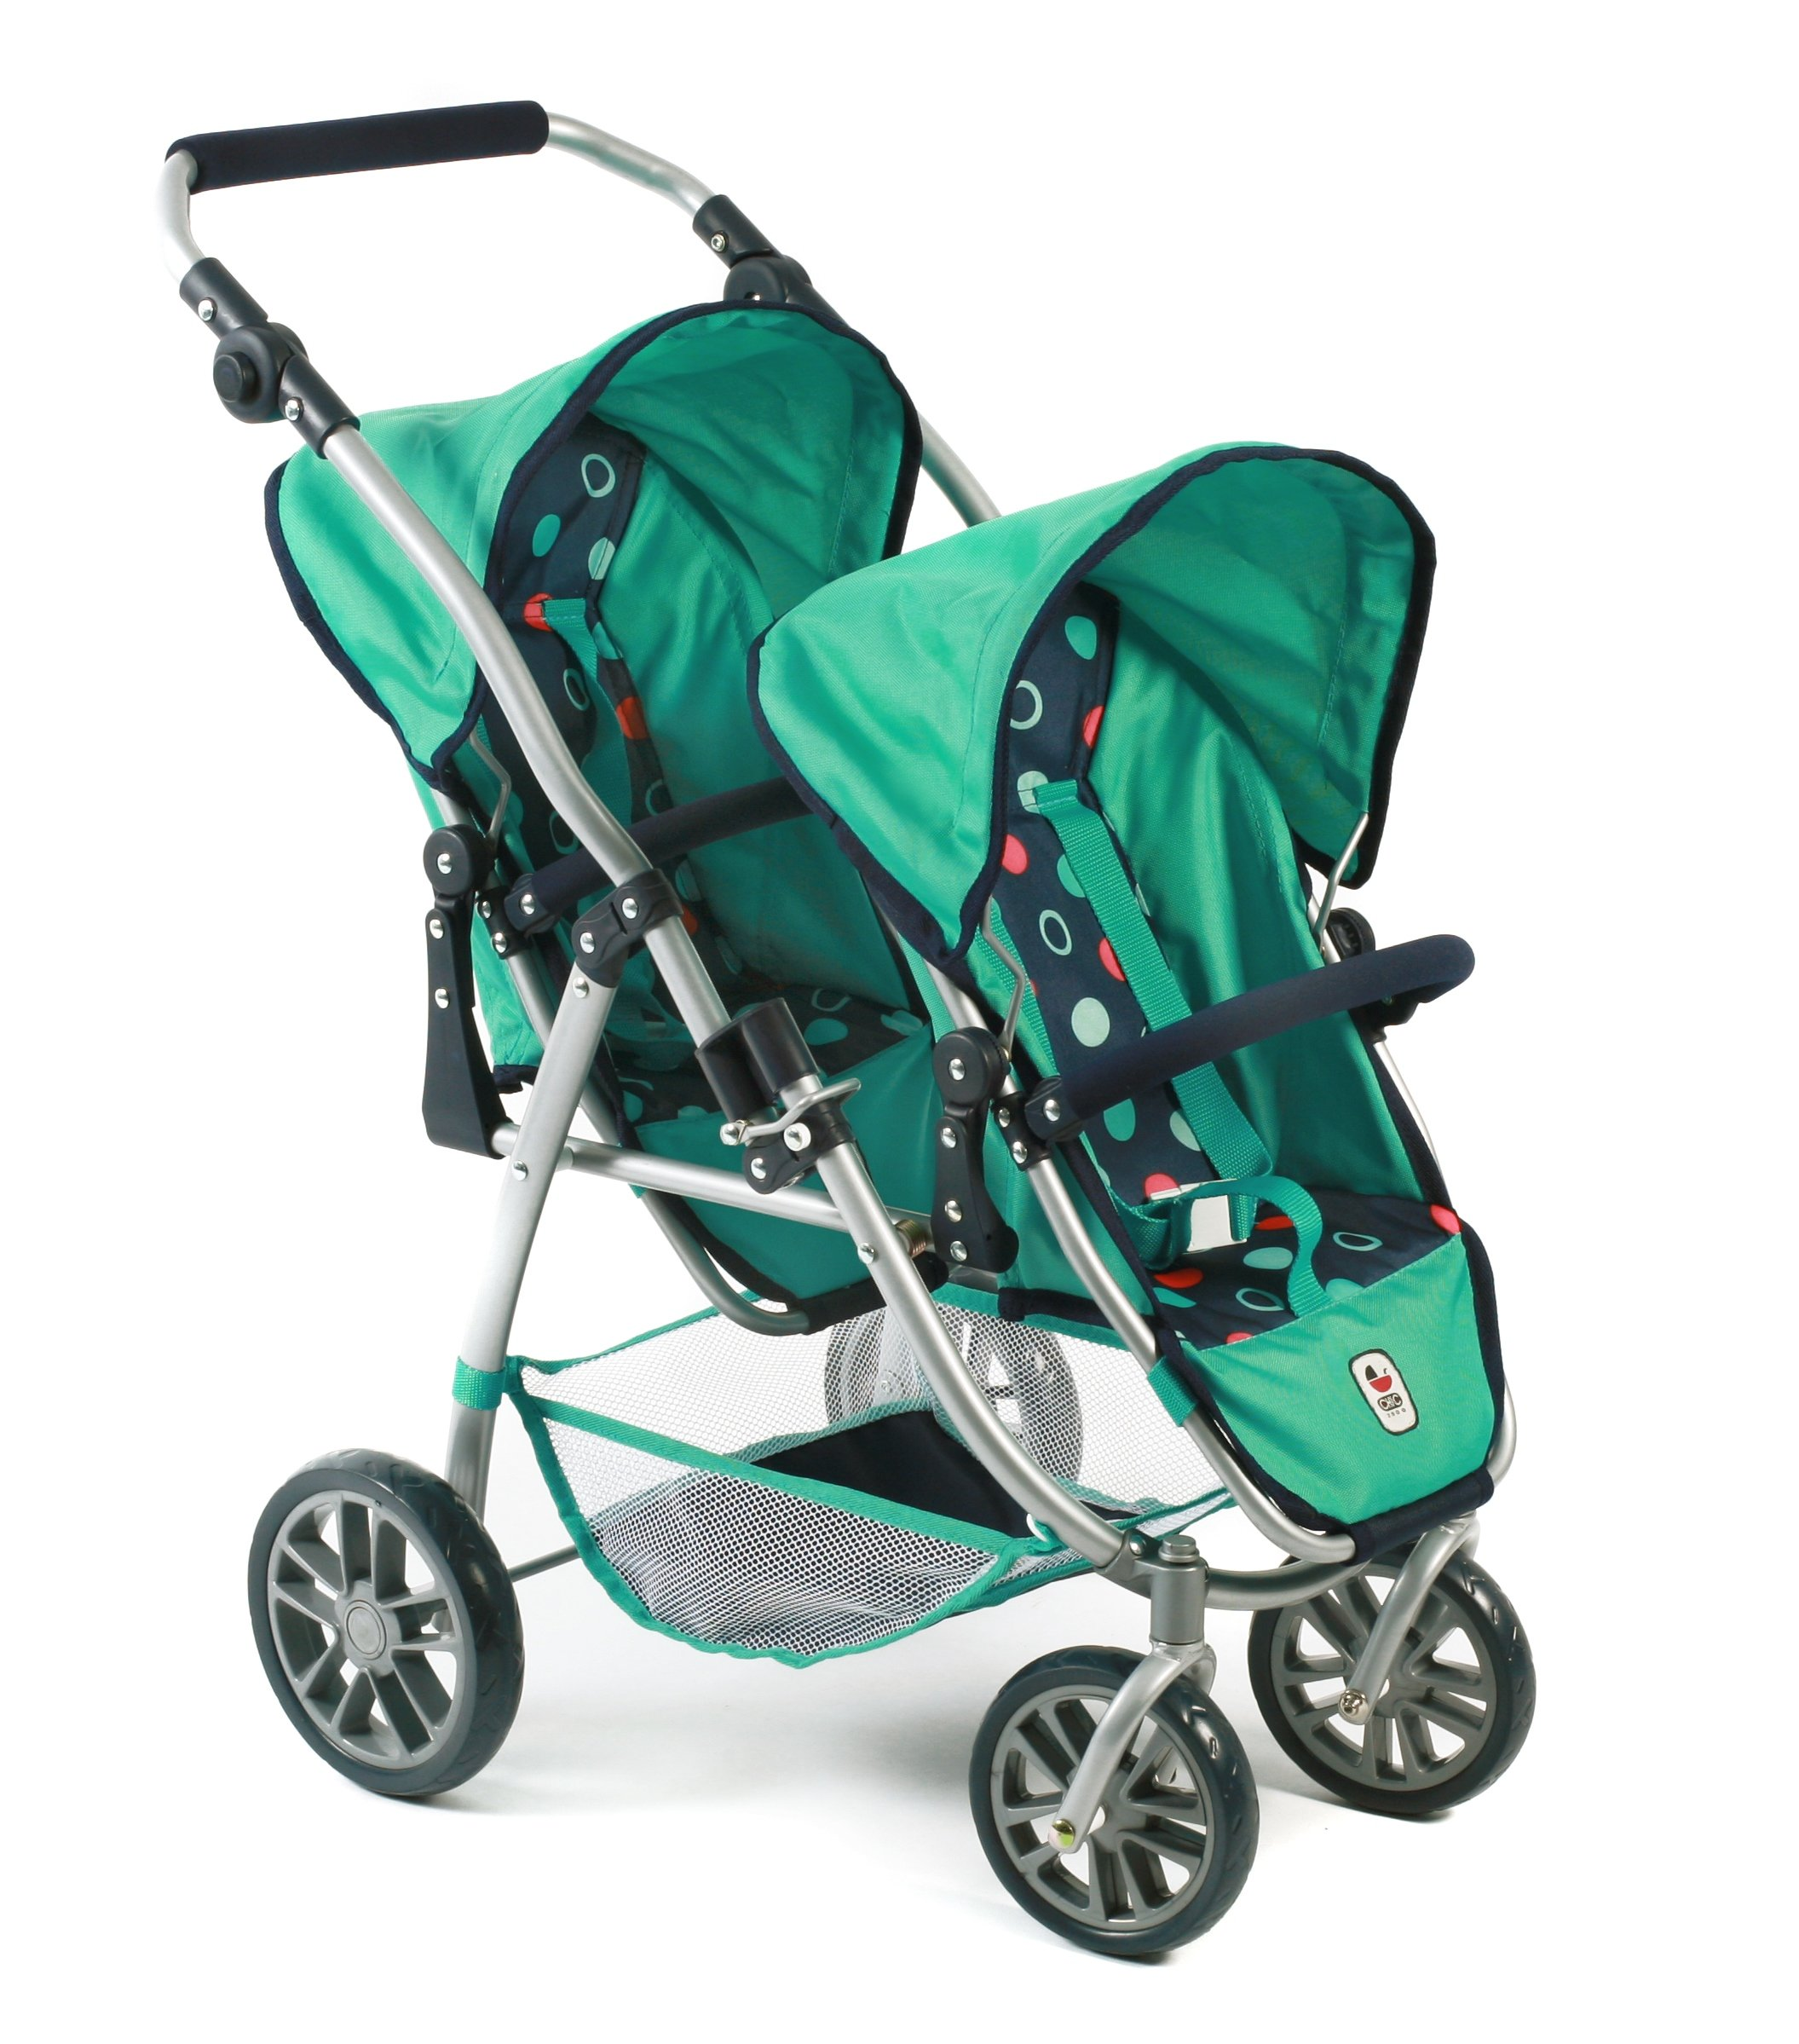 Bayer Chic 2000 689 21 Doll pram, Mint Bayer Chic Modern twin pushchairs with two removable and to be in a lying position adjustable Sport seating The seat of your Twin trolley are detachable and can be in multiple directions he tandem Buggy has a height-adjustable slider from 55 - 33 cm 3